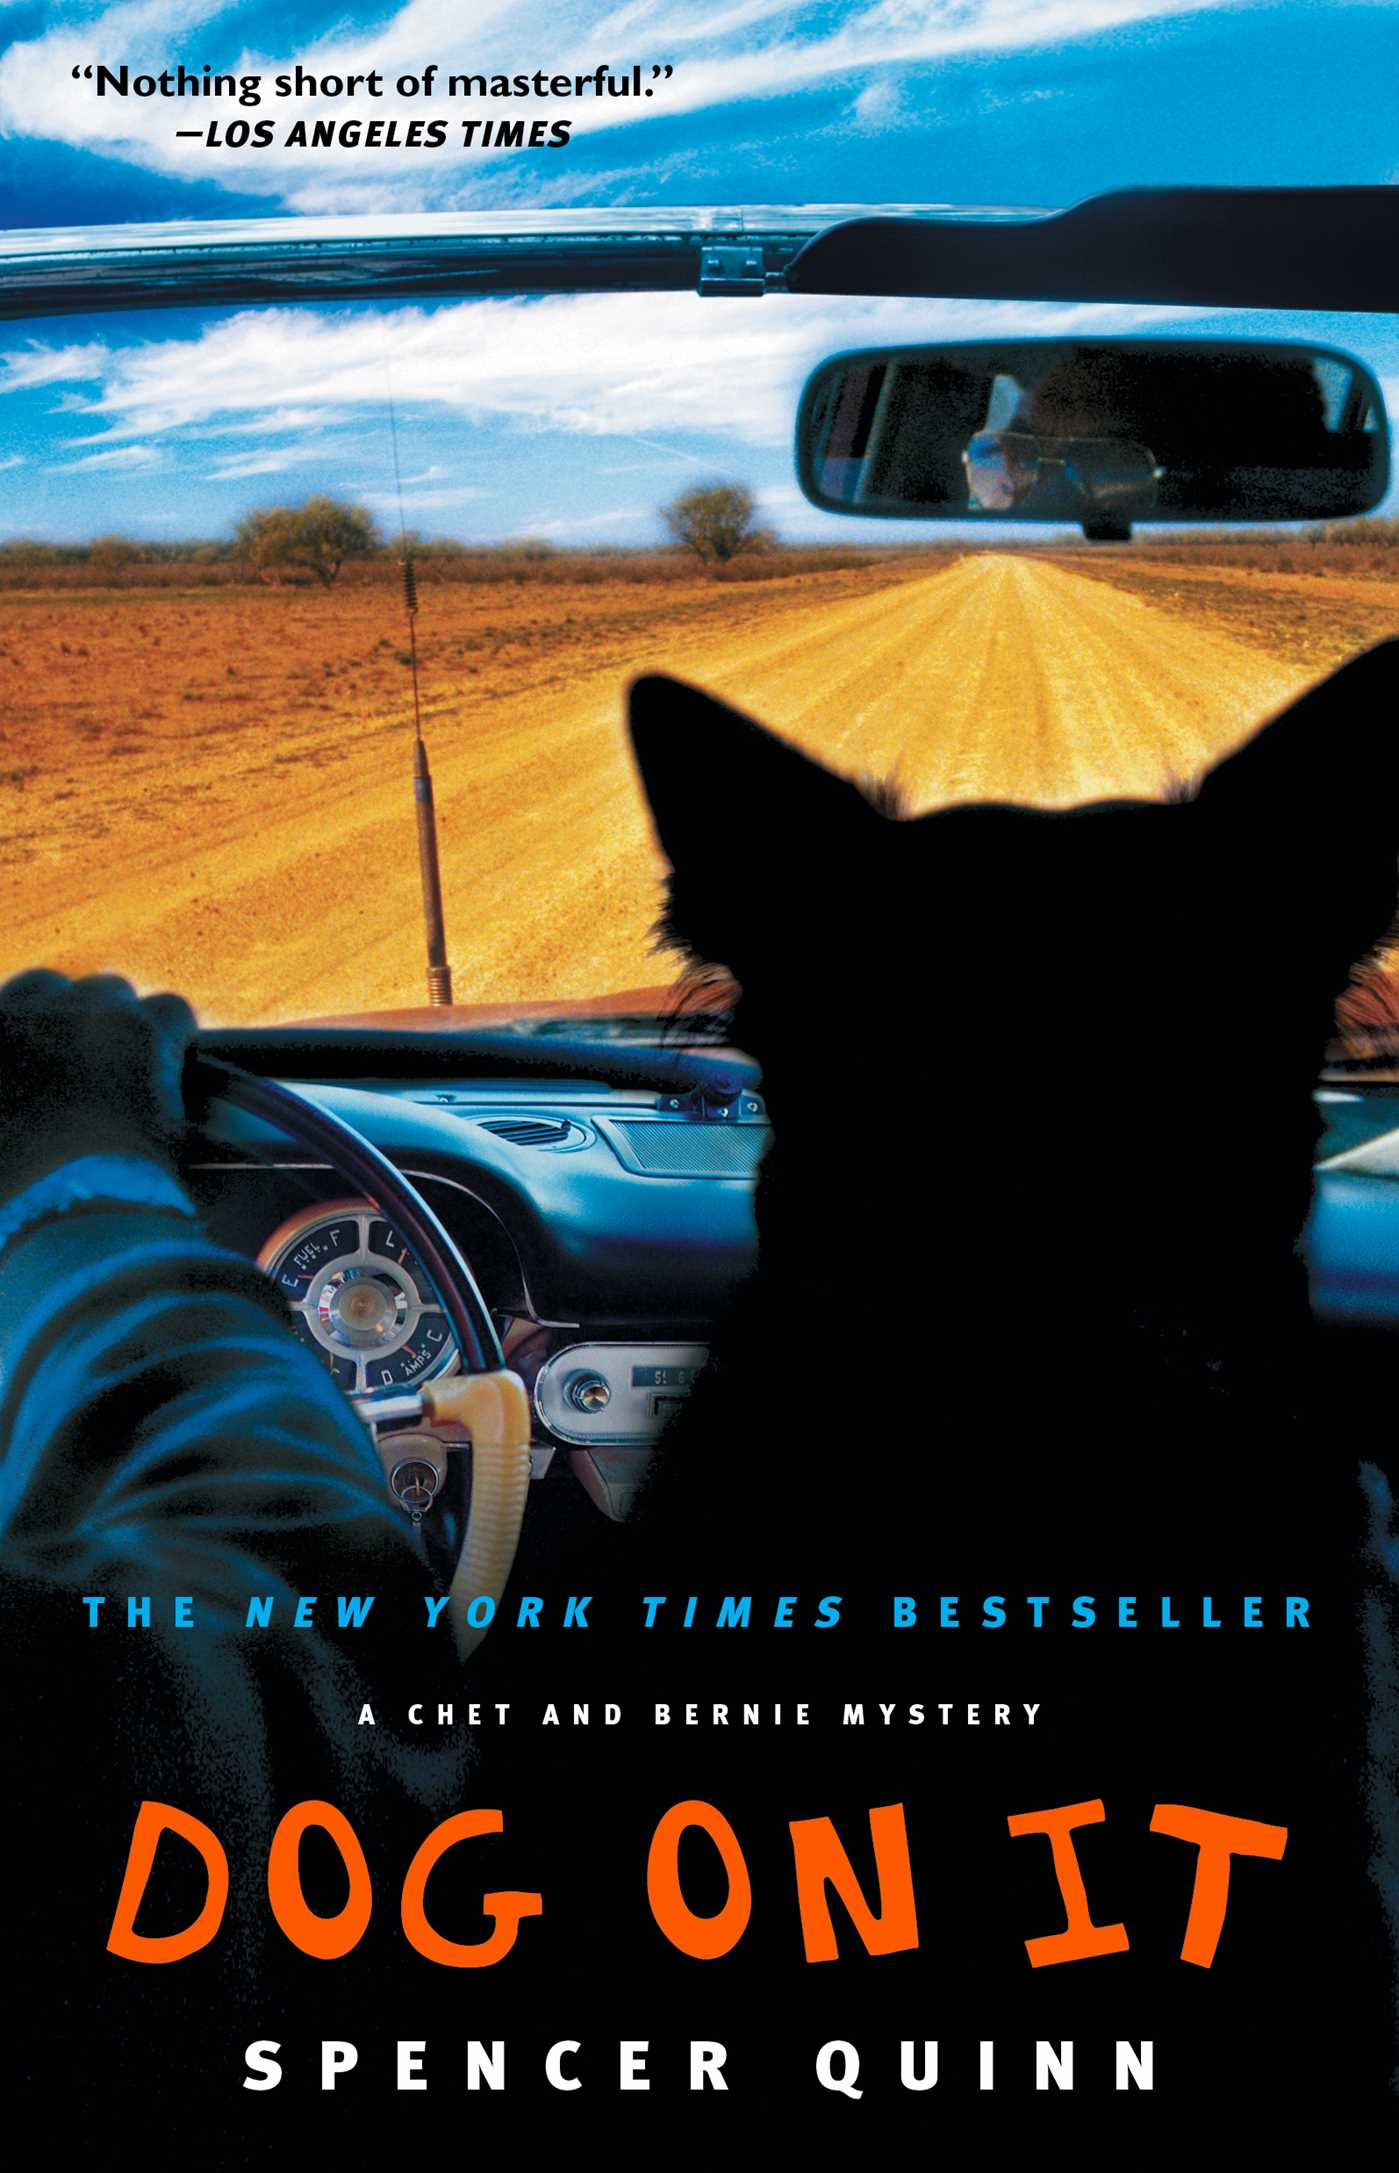 Dog on It A Chet and Bernie Mystery